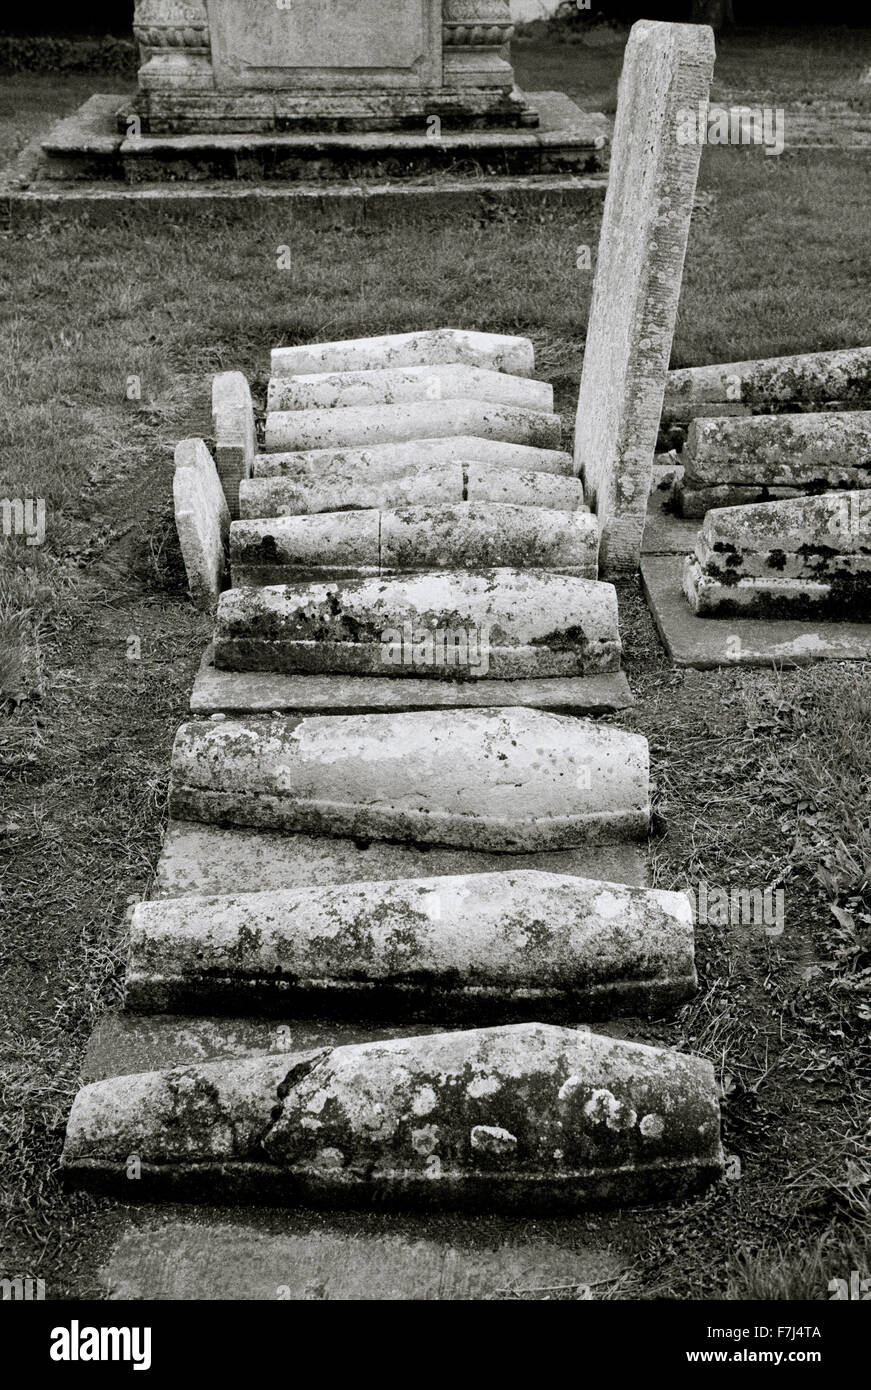 Charles Dickens' child graves in St James graveyard in Cooling in Kent in England in Britain in the United Kingdom. - Stock Image